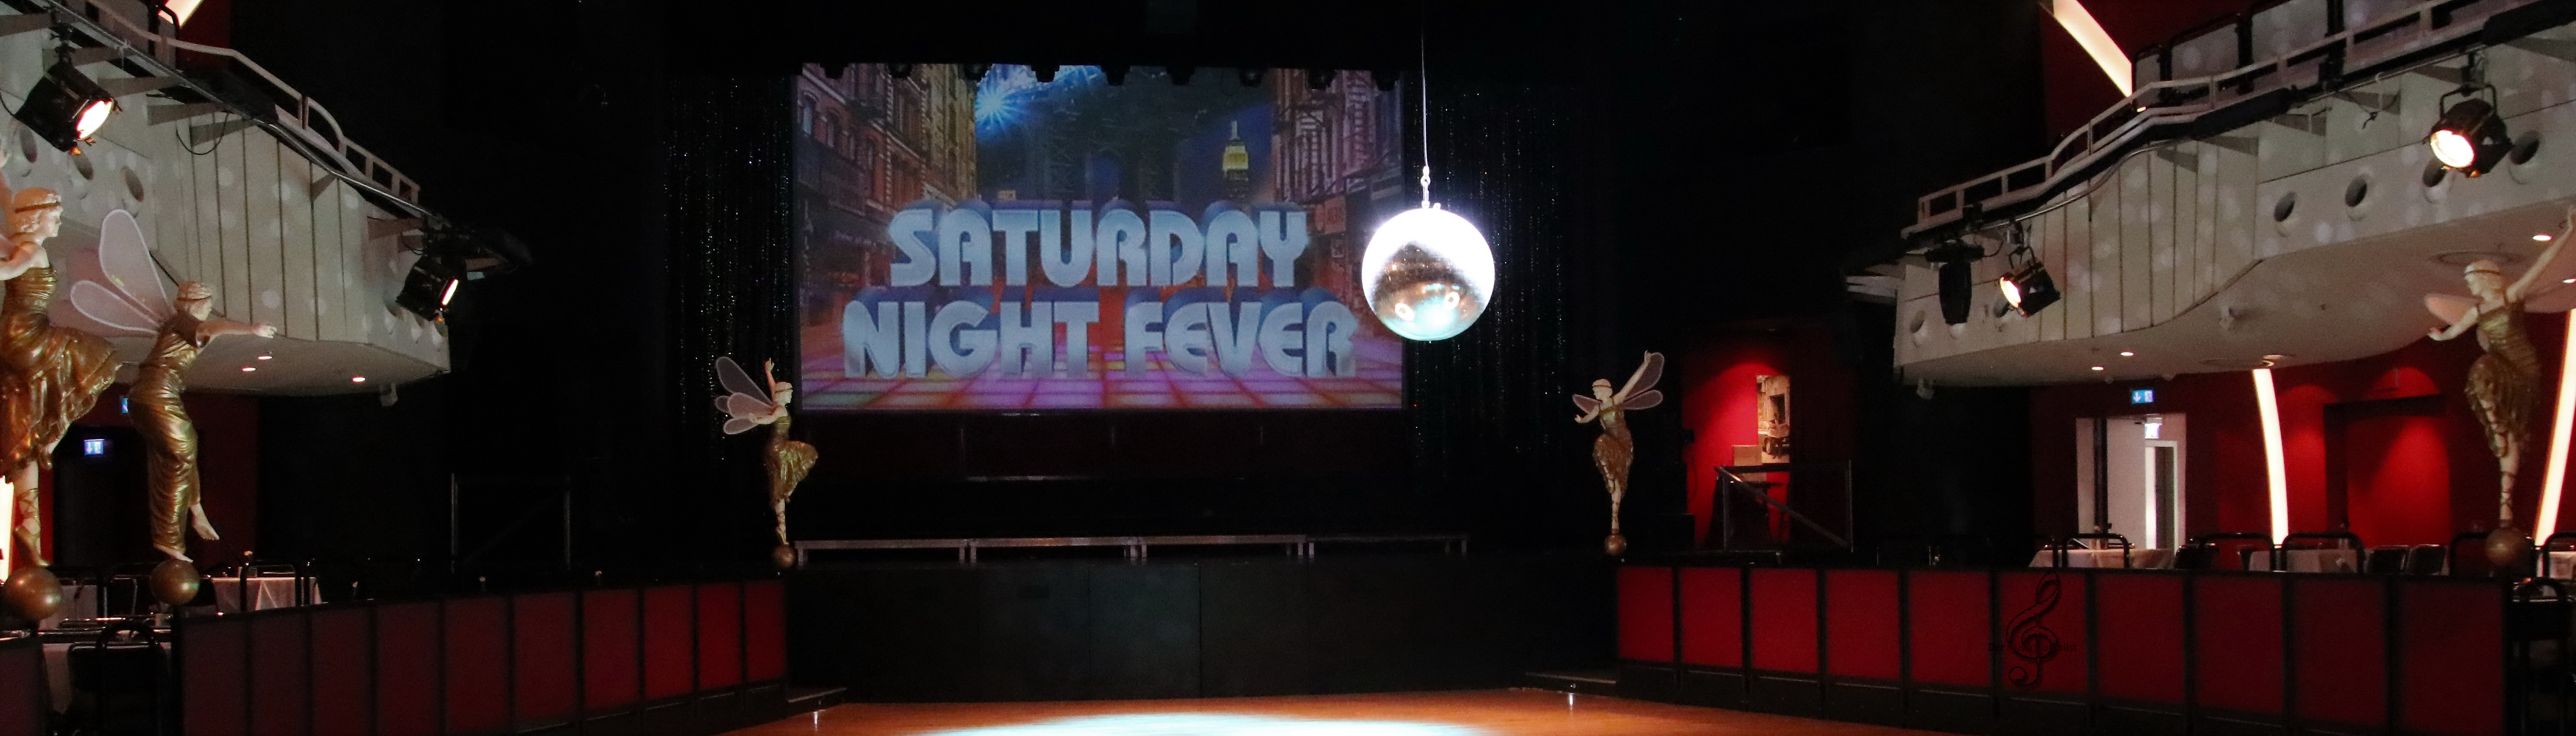 PK Saturday Night Fever Banner